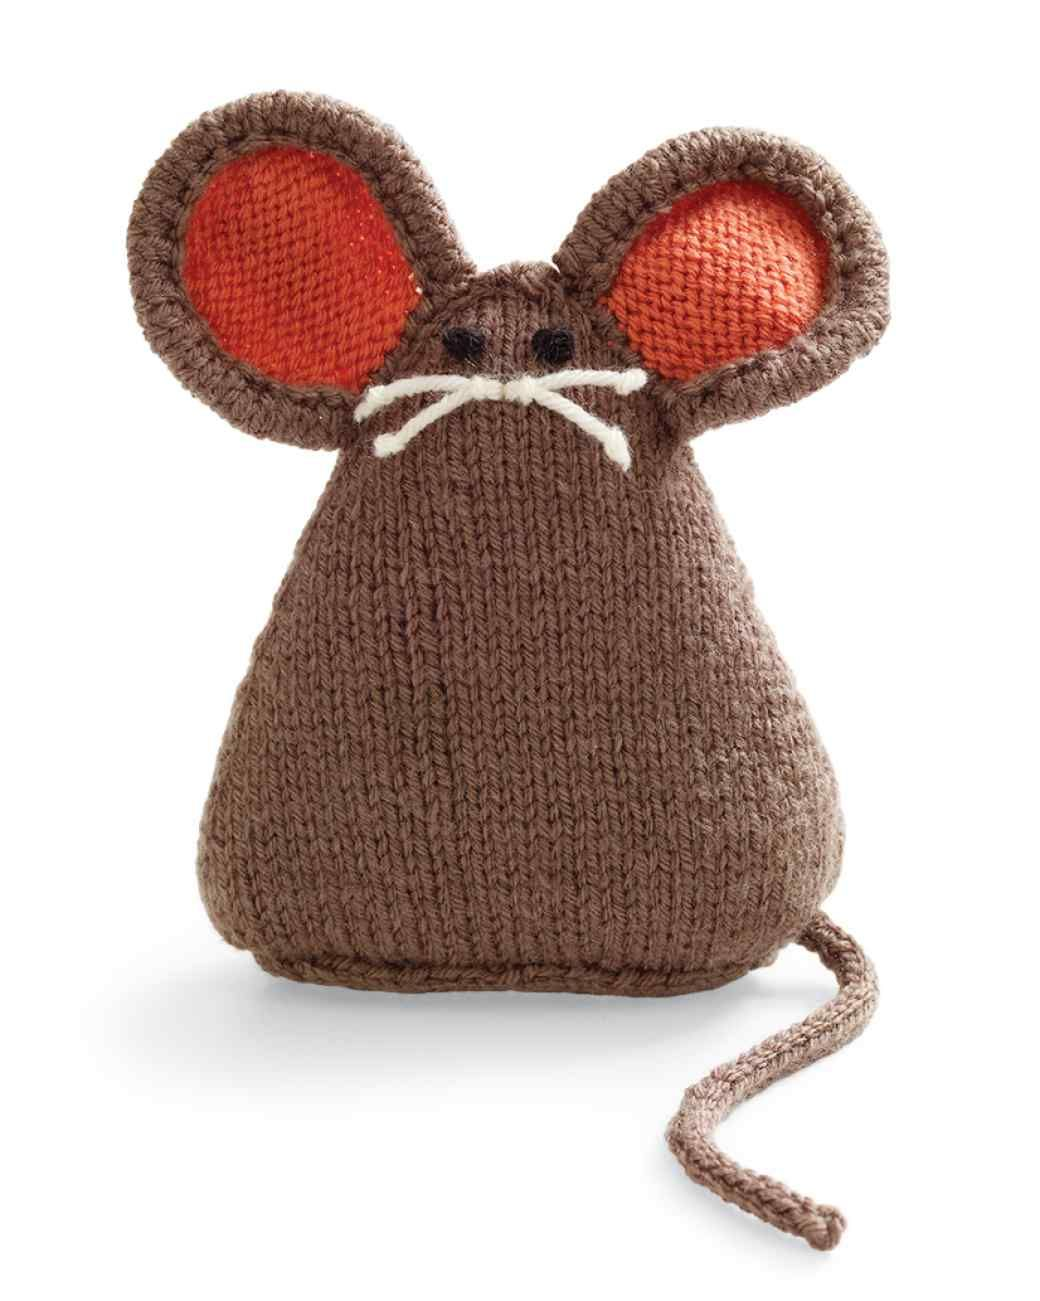 Knitted toys and other fun projects mice toy and knit crochet knitted toys and other fun projects bankloansurffo Choice Image